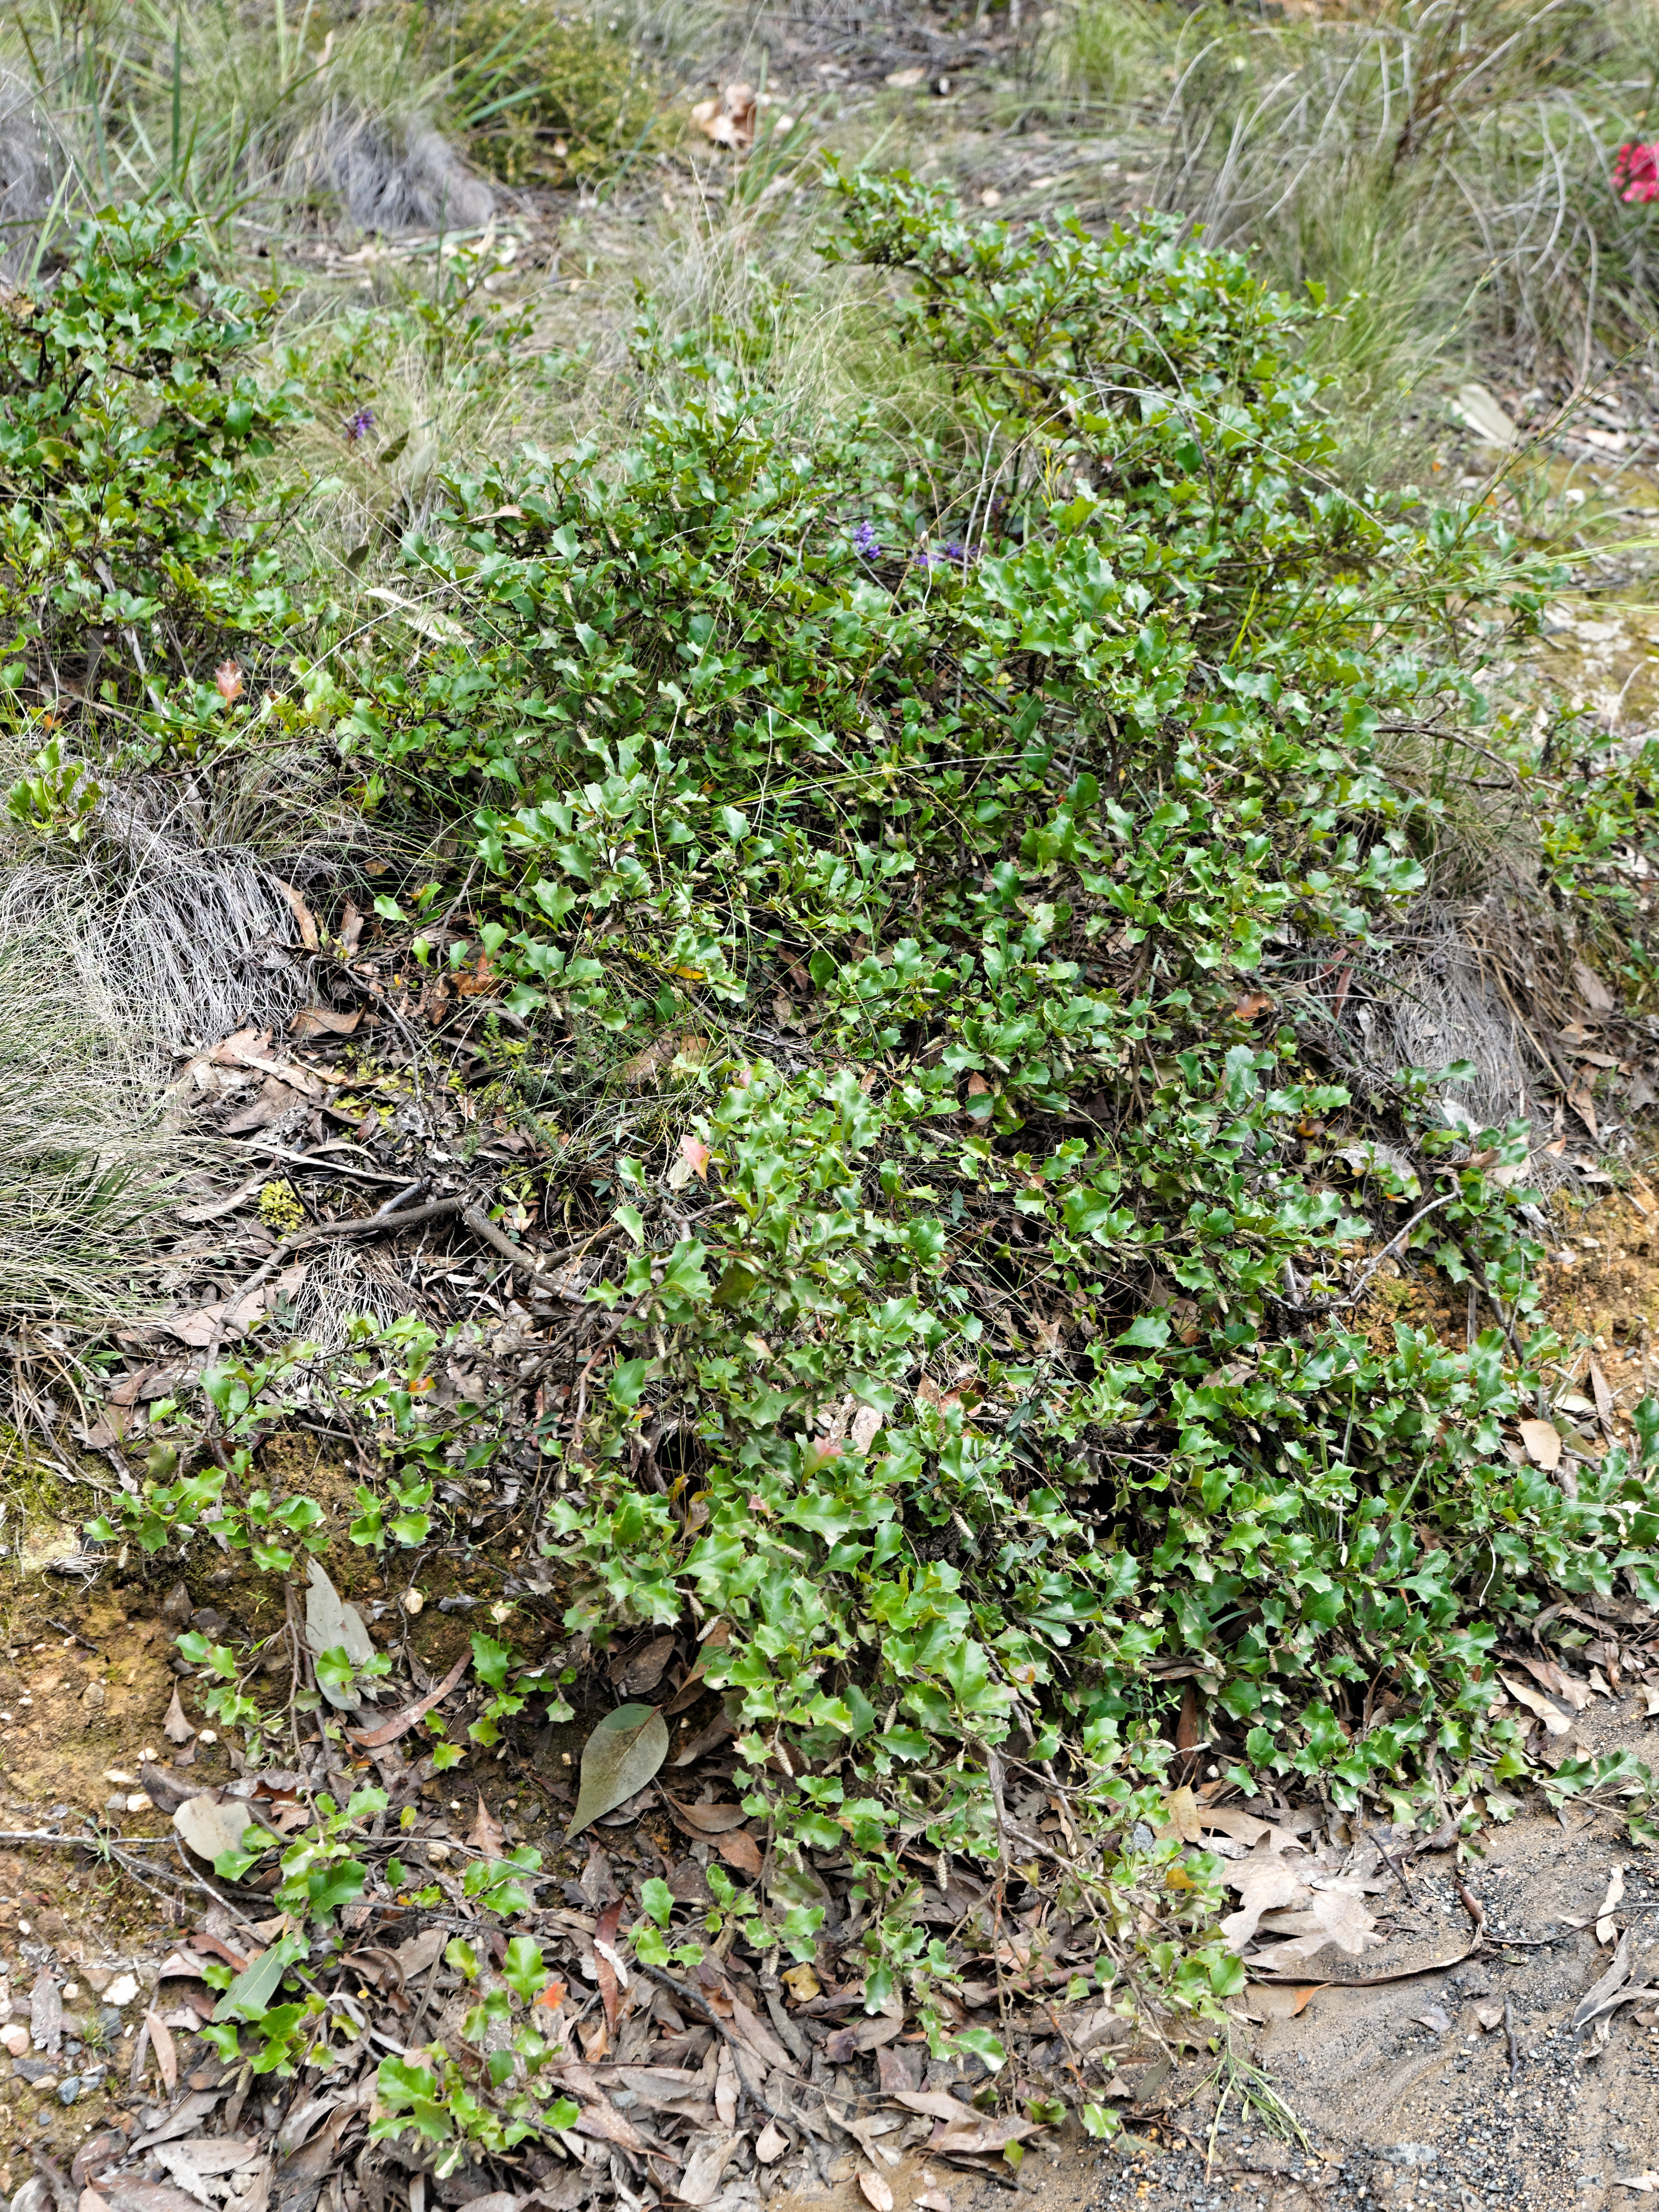 This should be Grevillea-bedggoodiana-4.jpeg.  Is it missing?